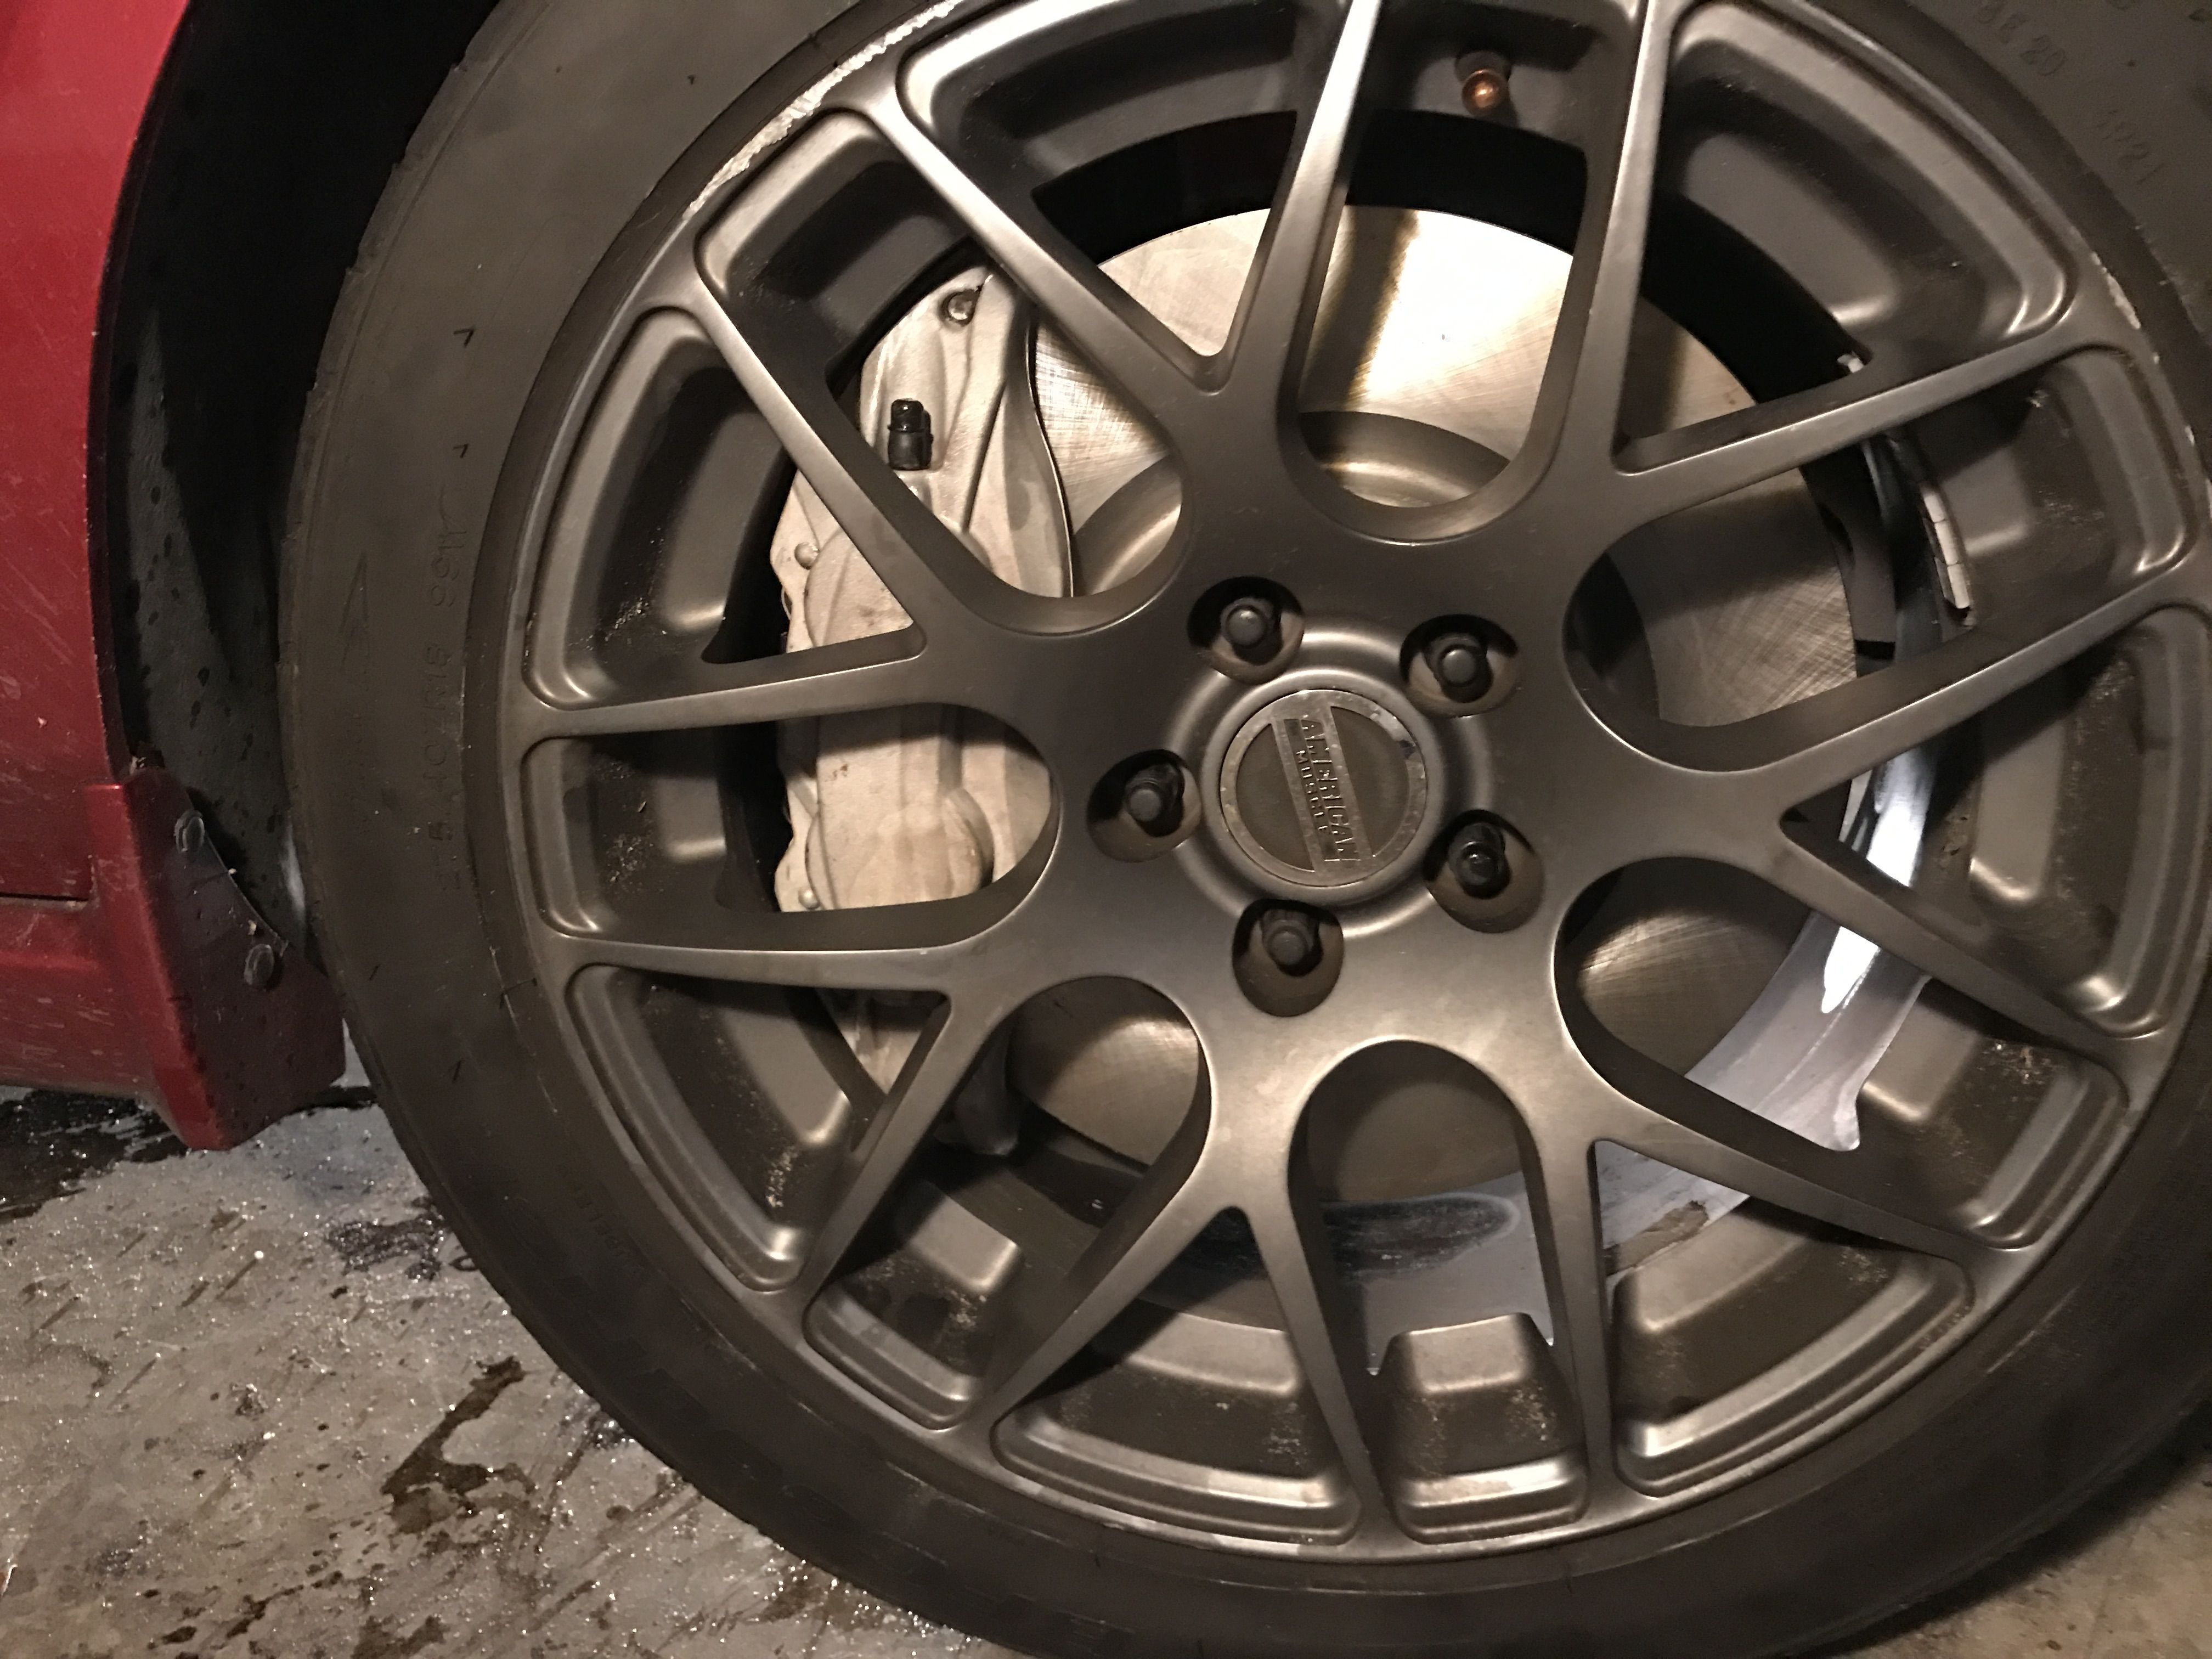 """I put the 2016 4 piston calipers on my 2006 GT. They bolt up no problem using 2009 GT500 rotors. Braking feel is way better and hopefully they won't overheat like my stock ones did. only issue was with 18"""" wheels it's tight but a little filing and they fit fine. #Mustang #usedcar #car #cars"""